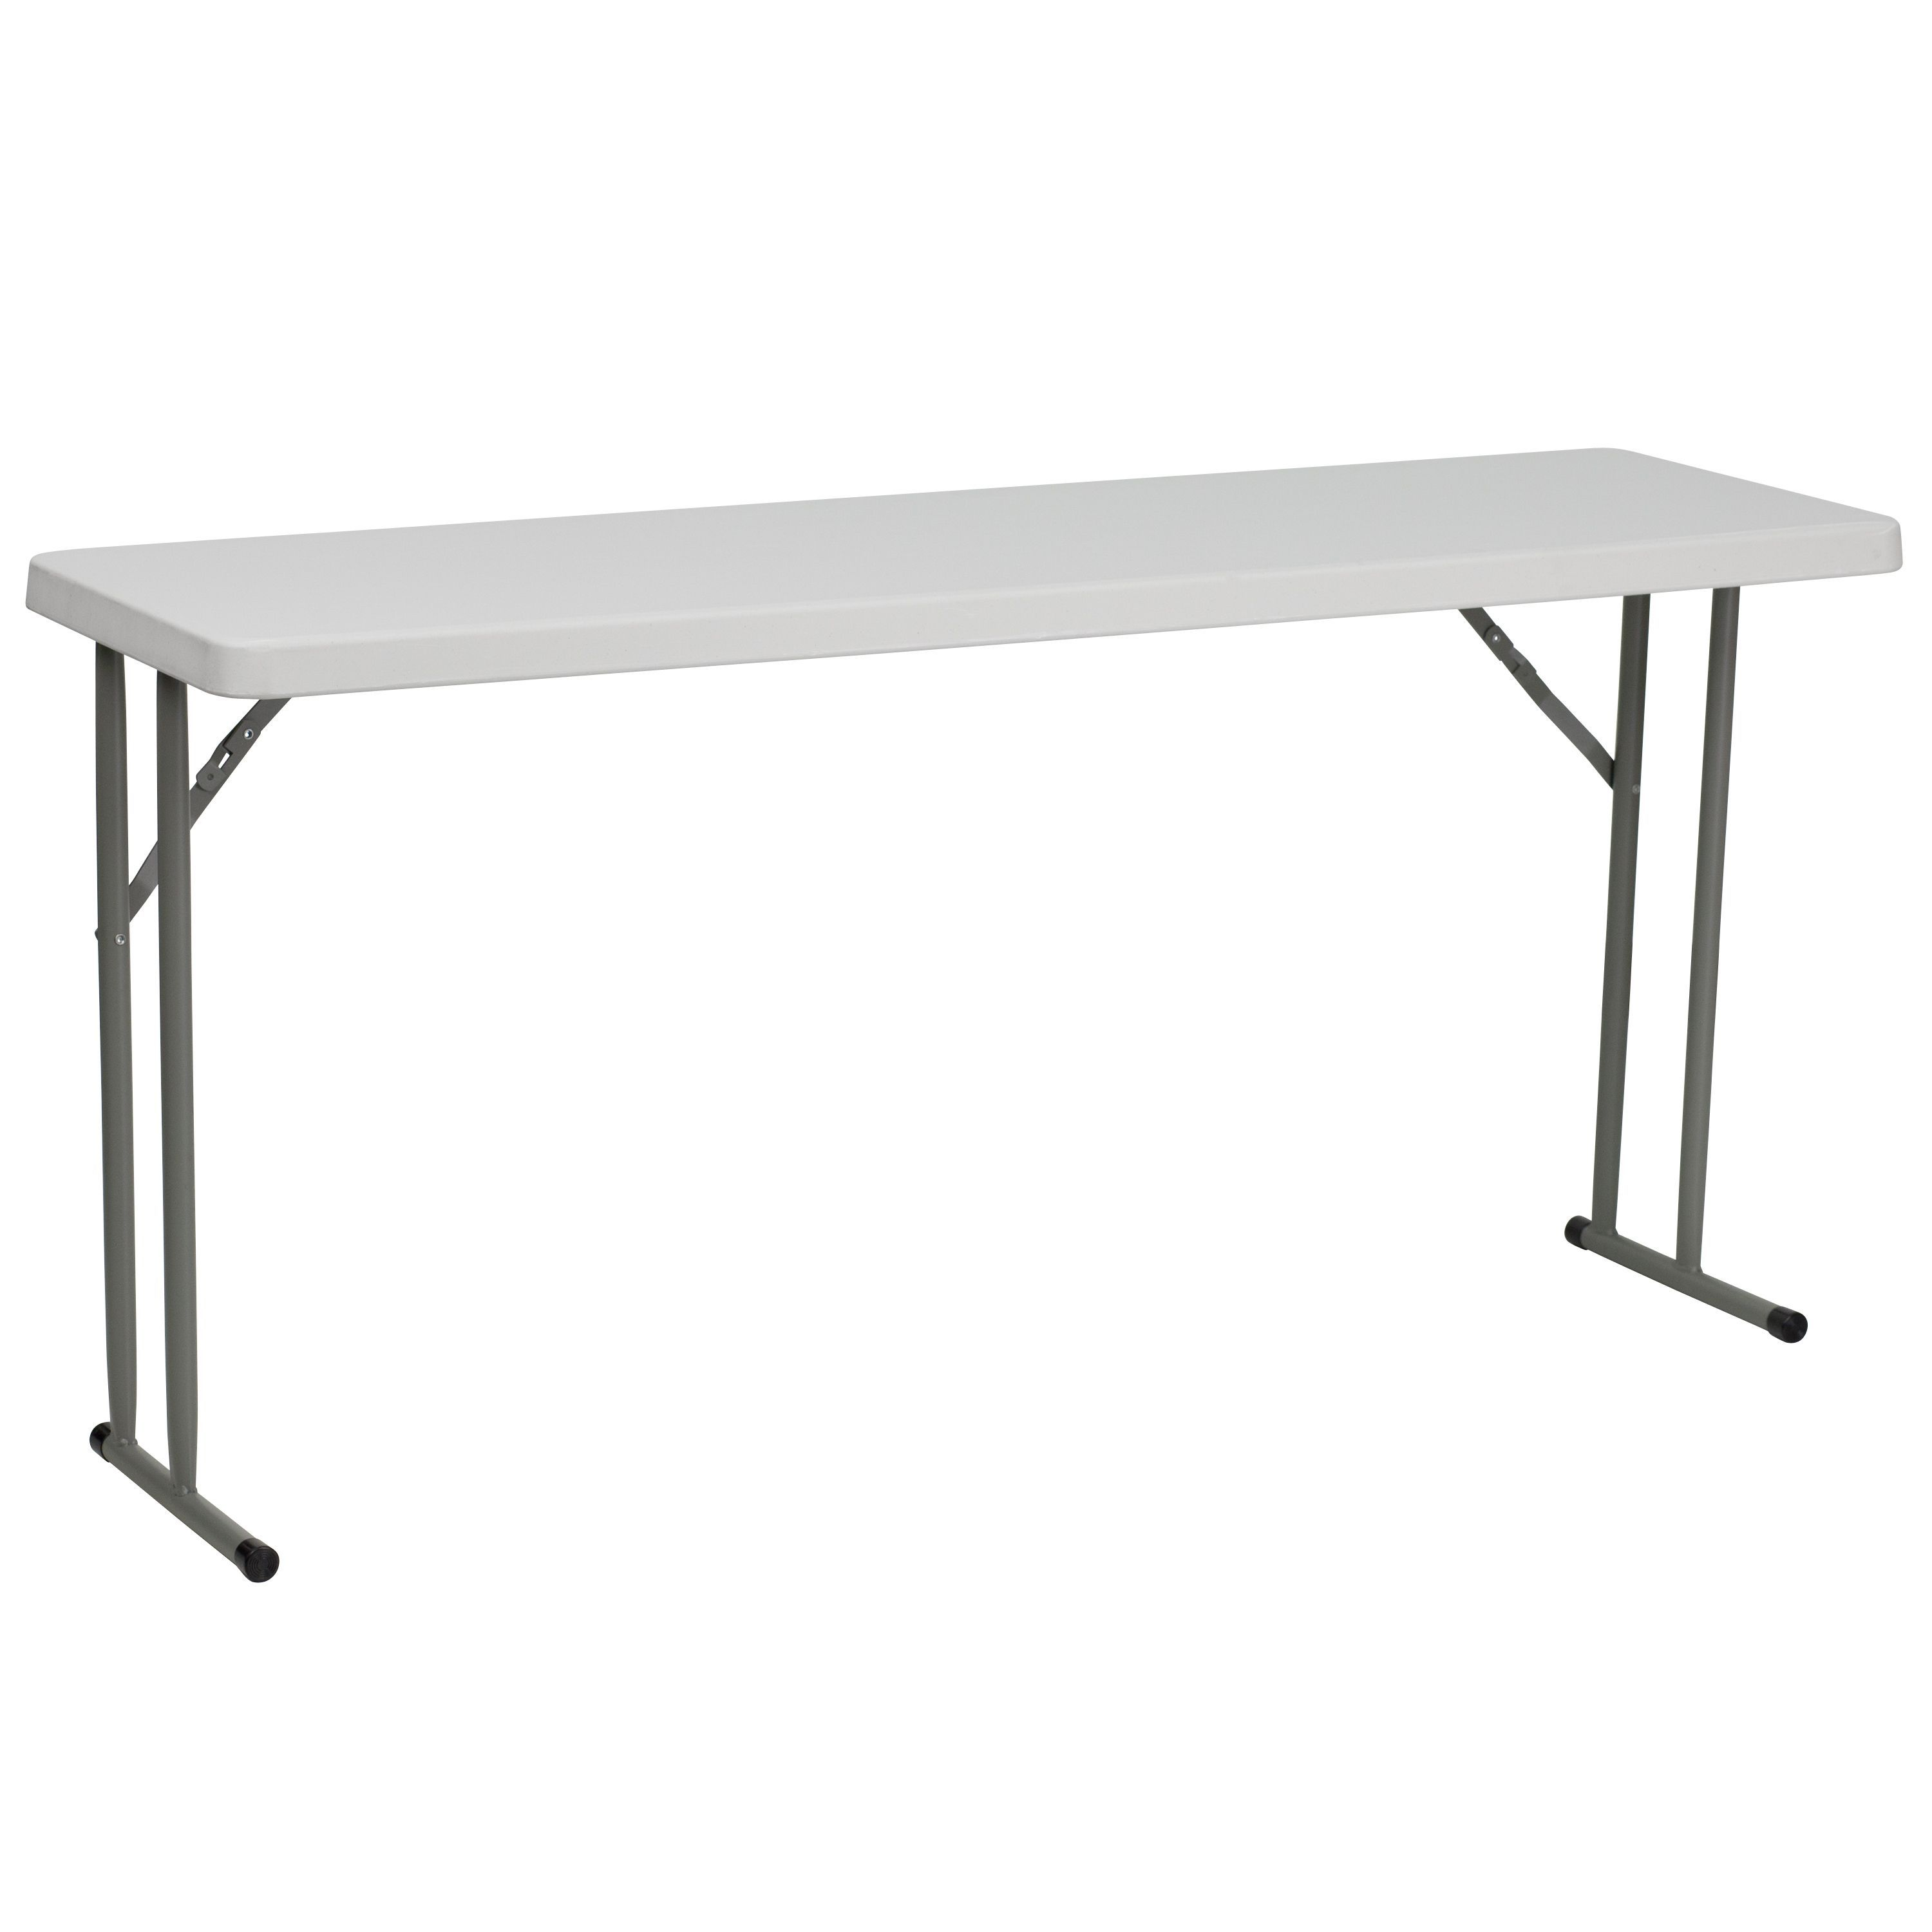 Online Shopping Bedding Furniture Electronics Jewelry Clothing More Furniture Home White Table Top